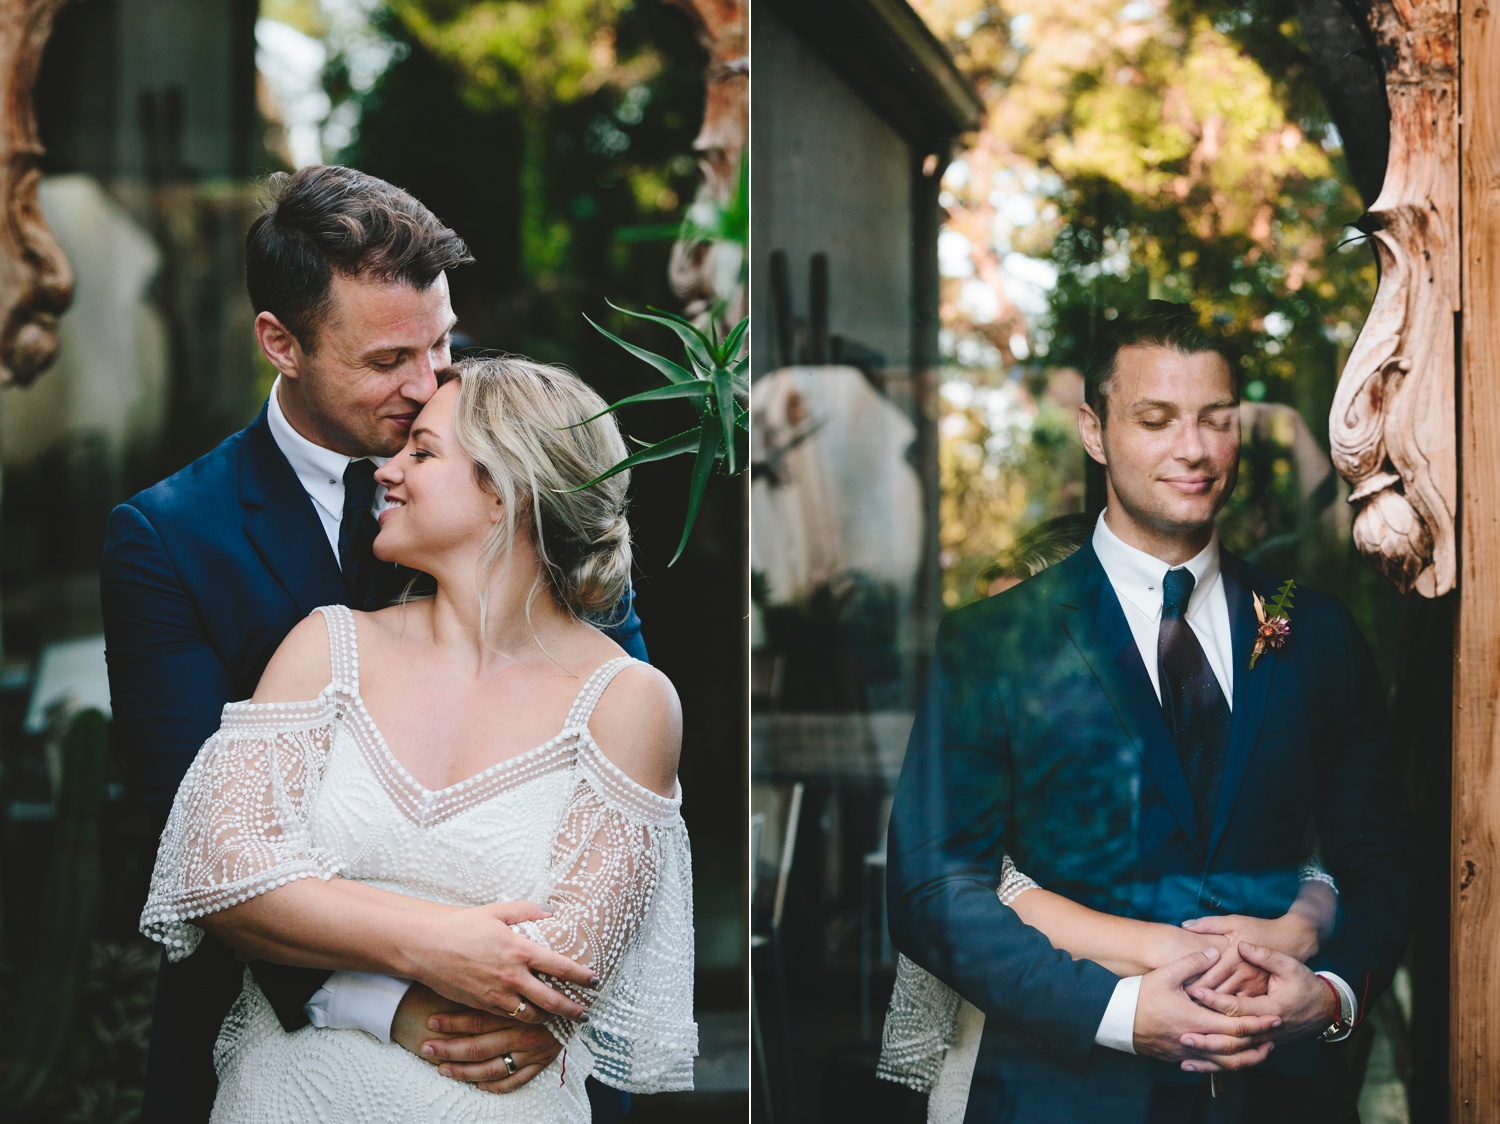 charlie_ray_photography_runaway_romance_elopement_emily_moon_plett_simple_boho_wedding_south_africa_bohemium_0087.jpg